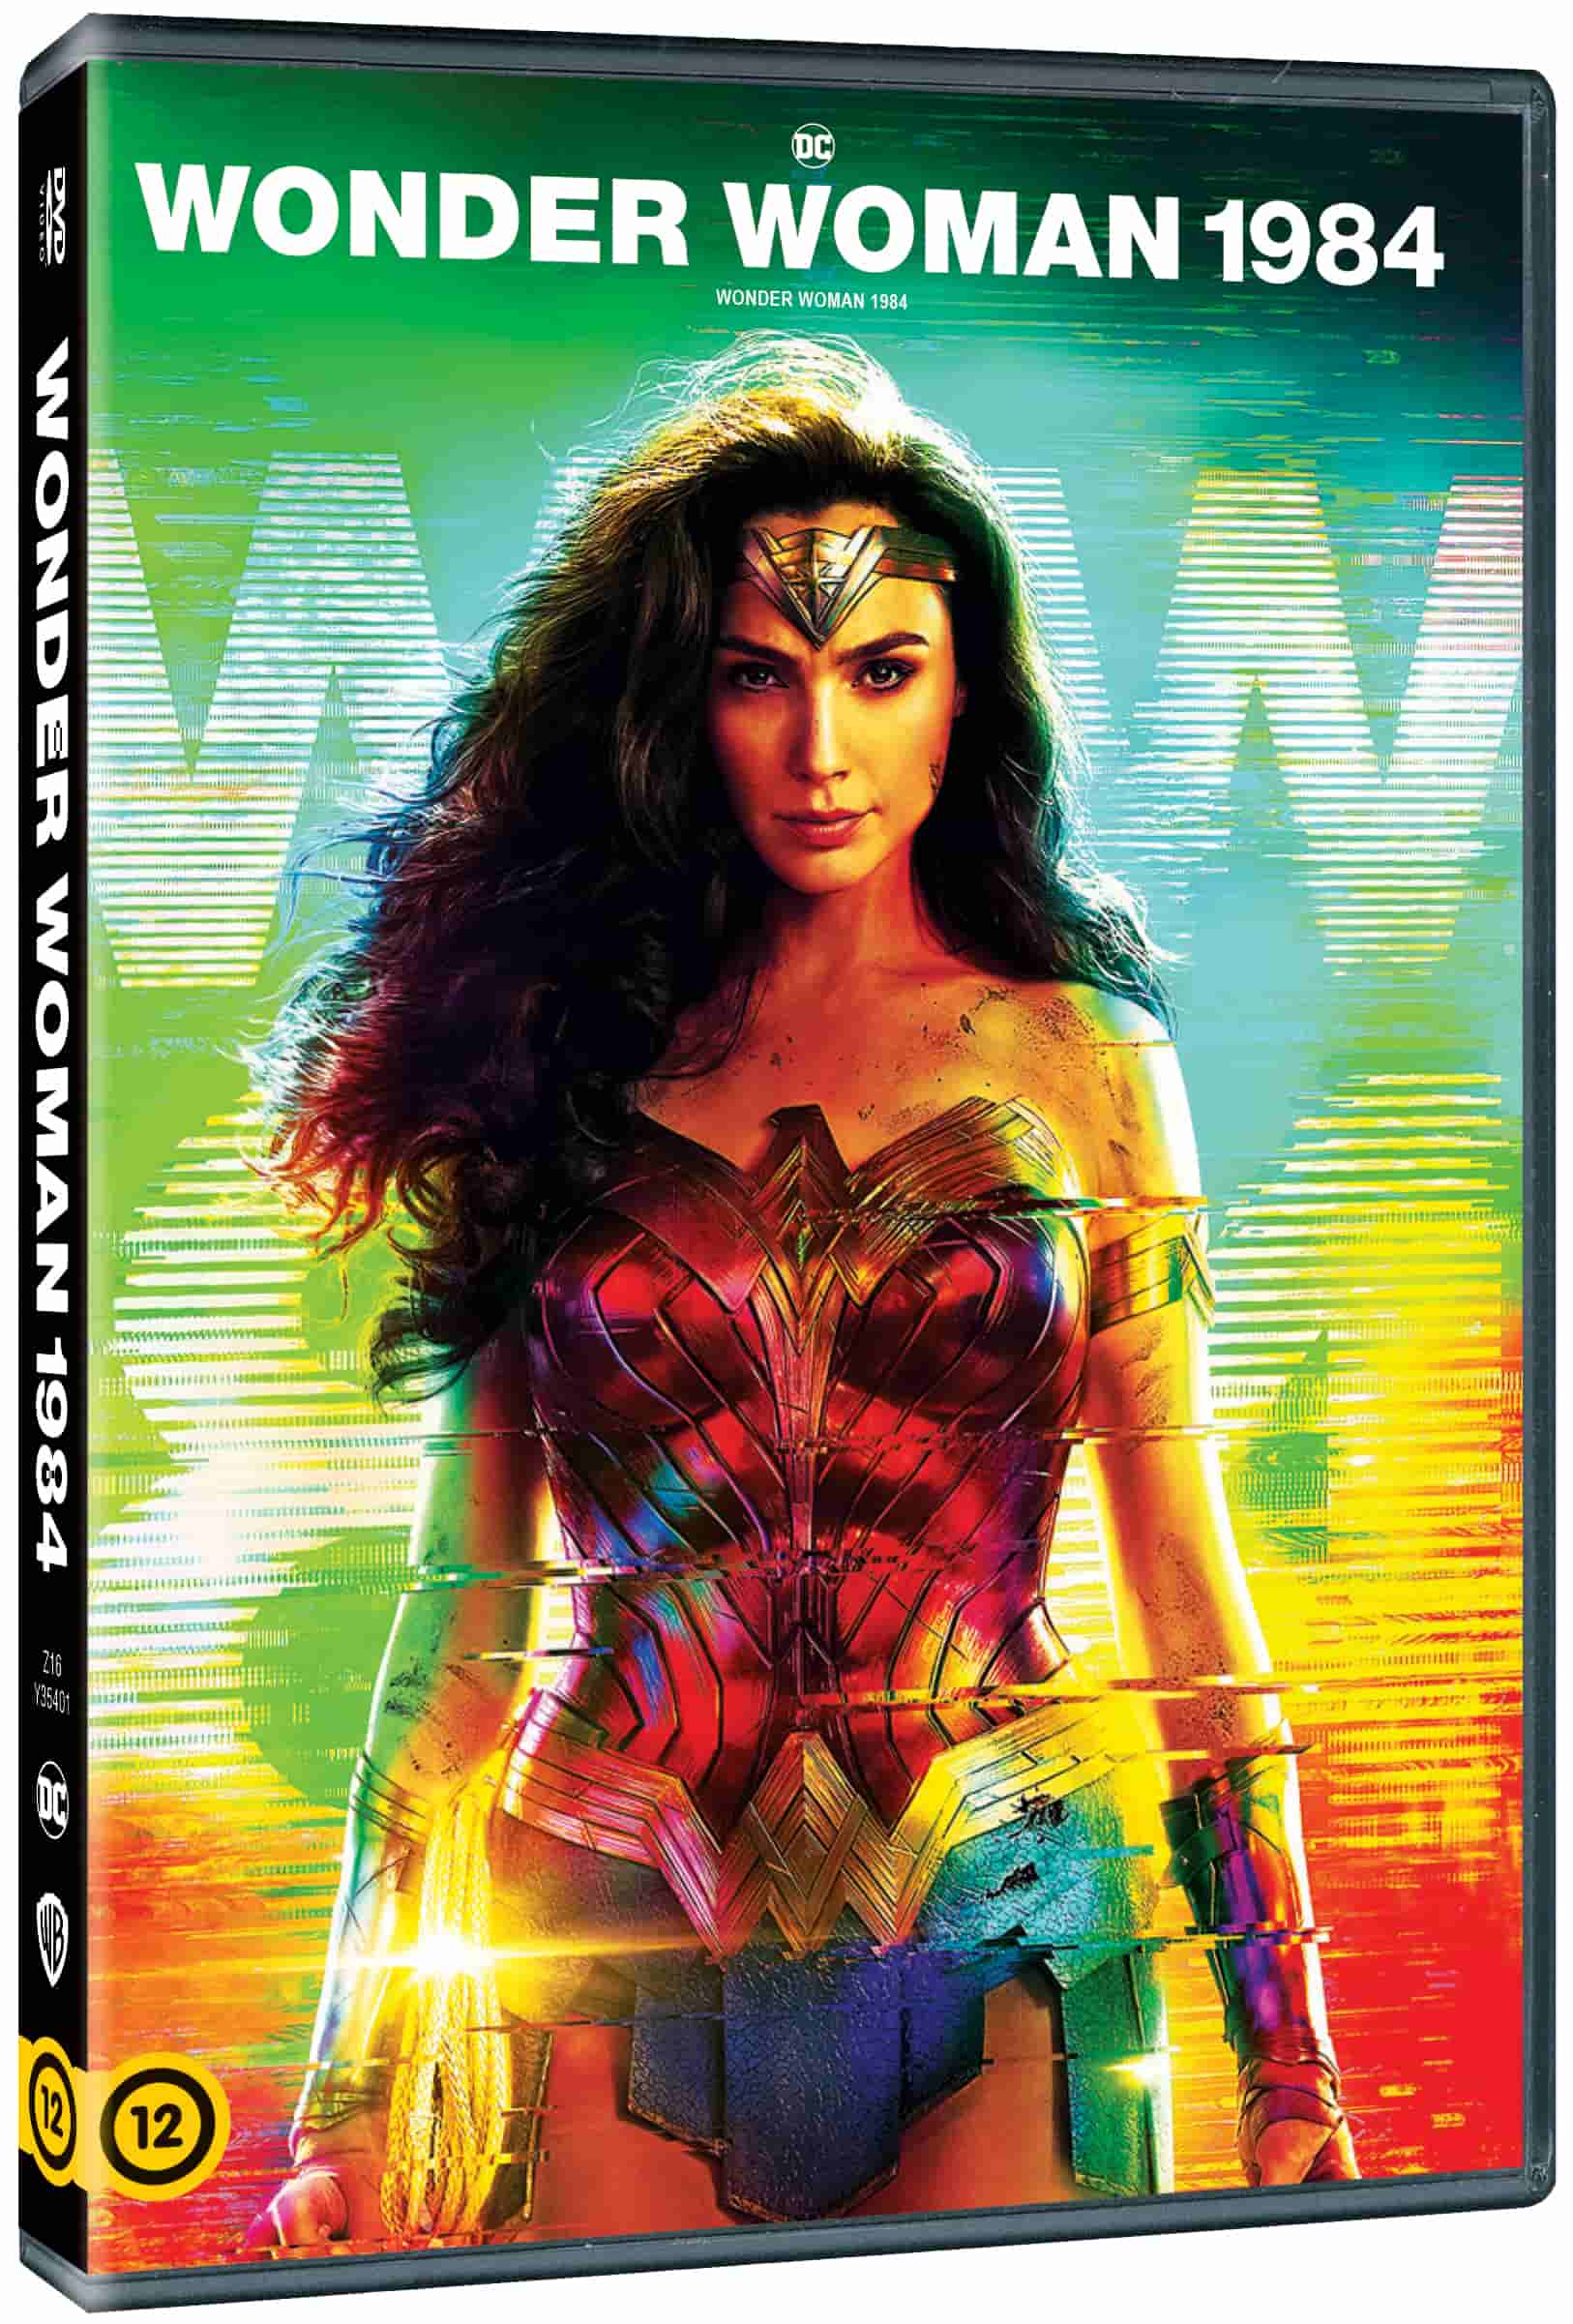 Patty Jenkins - Wonder Woman 1984 - DVD